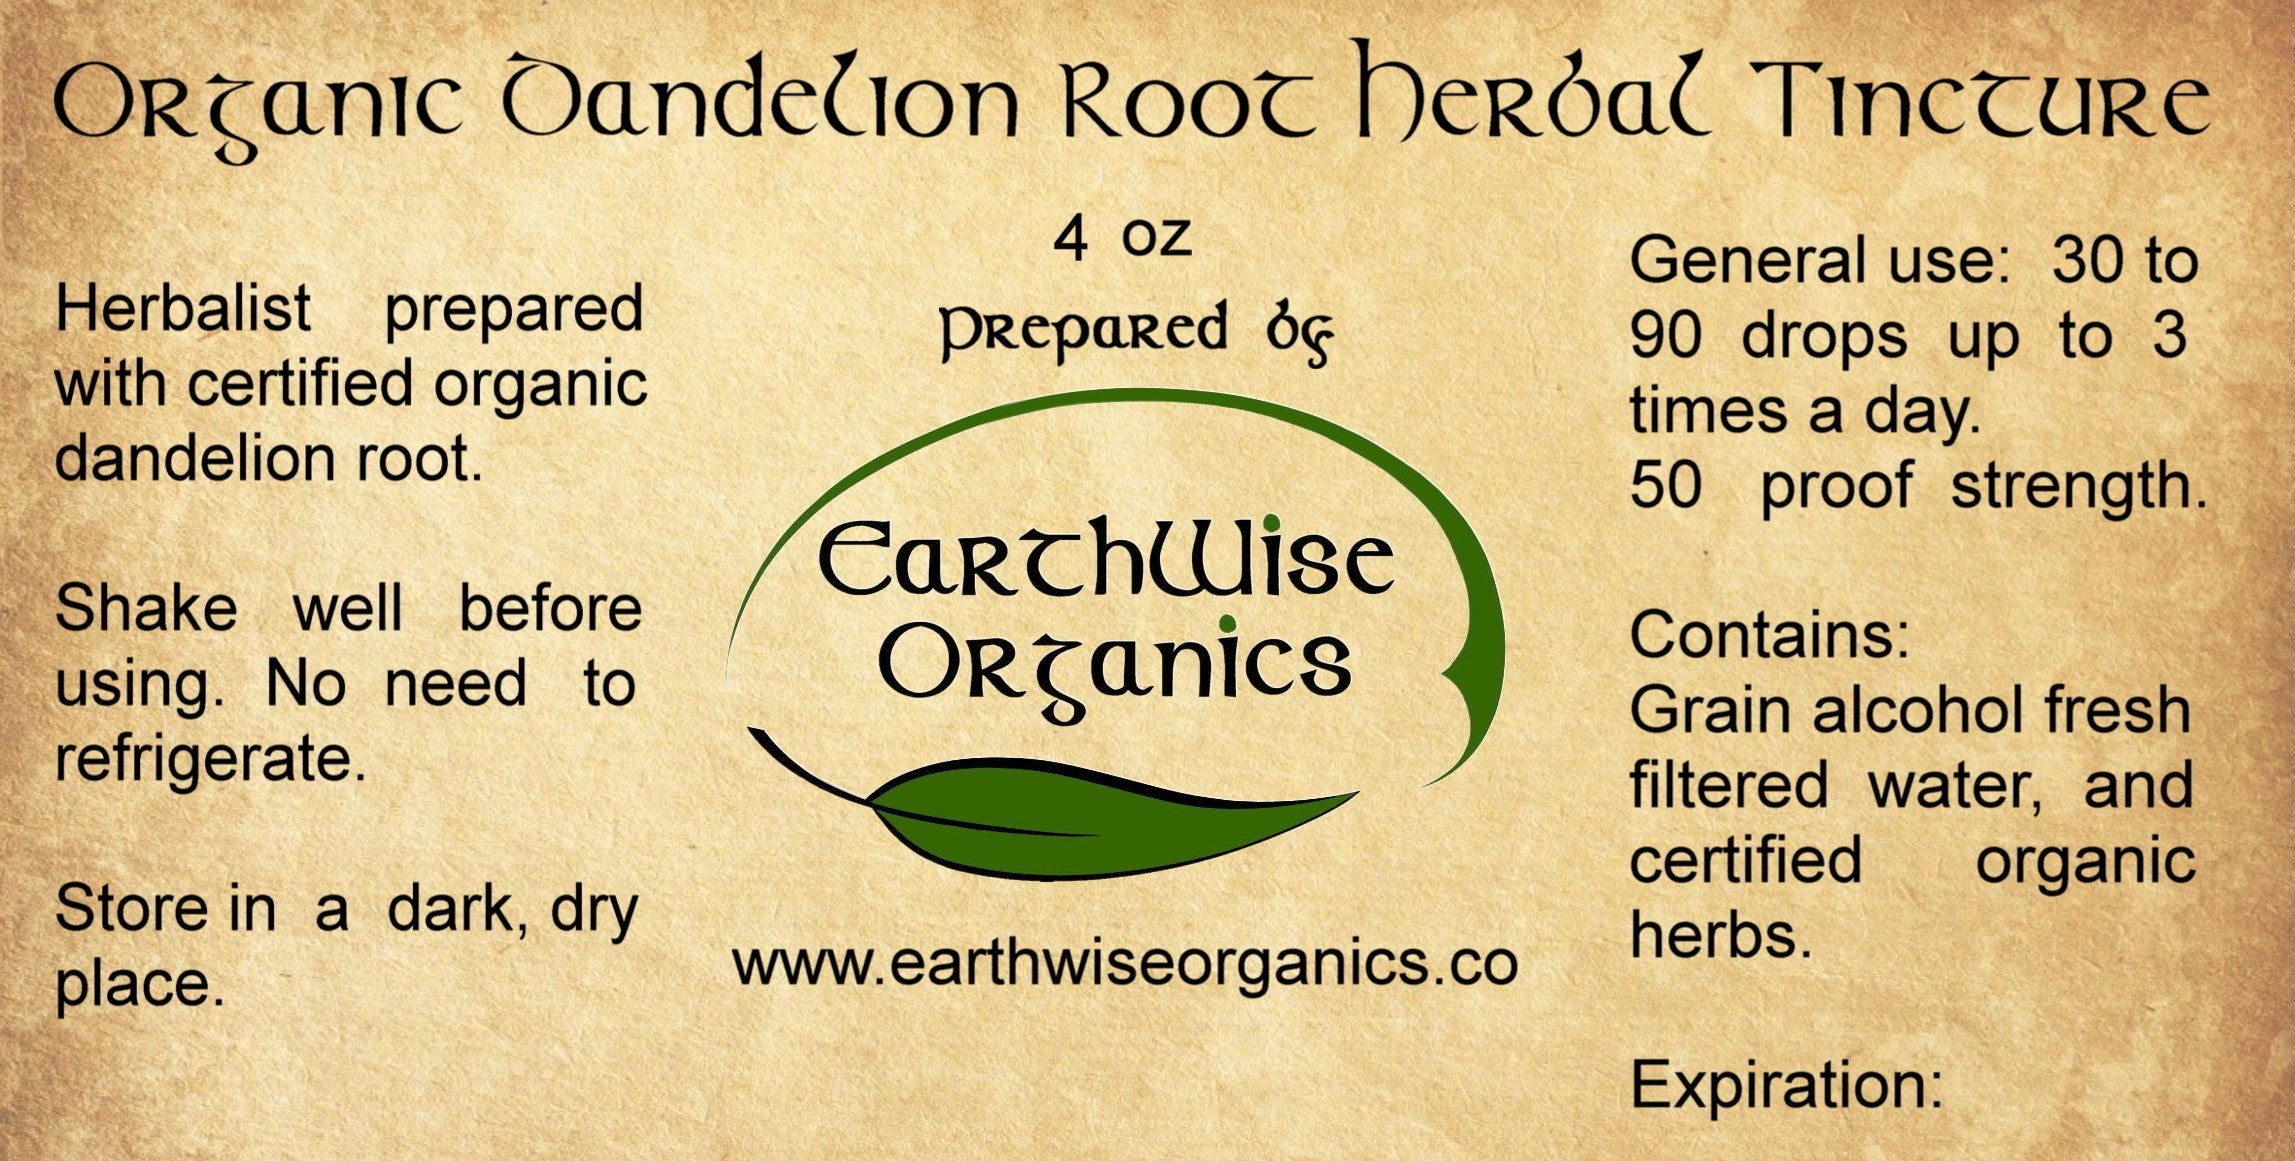 dandelion root organic herbal tincture label